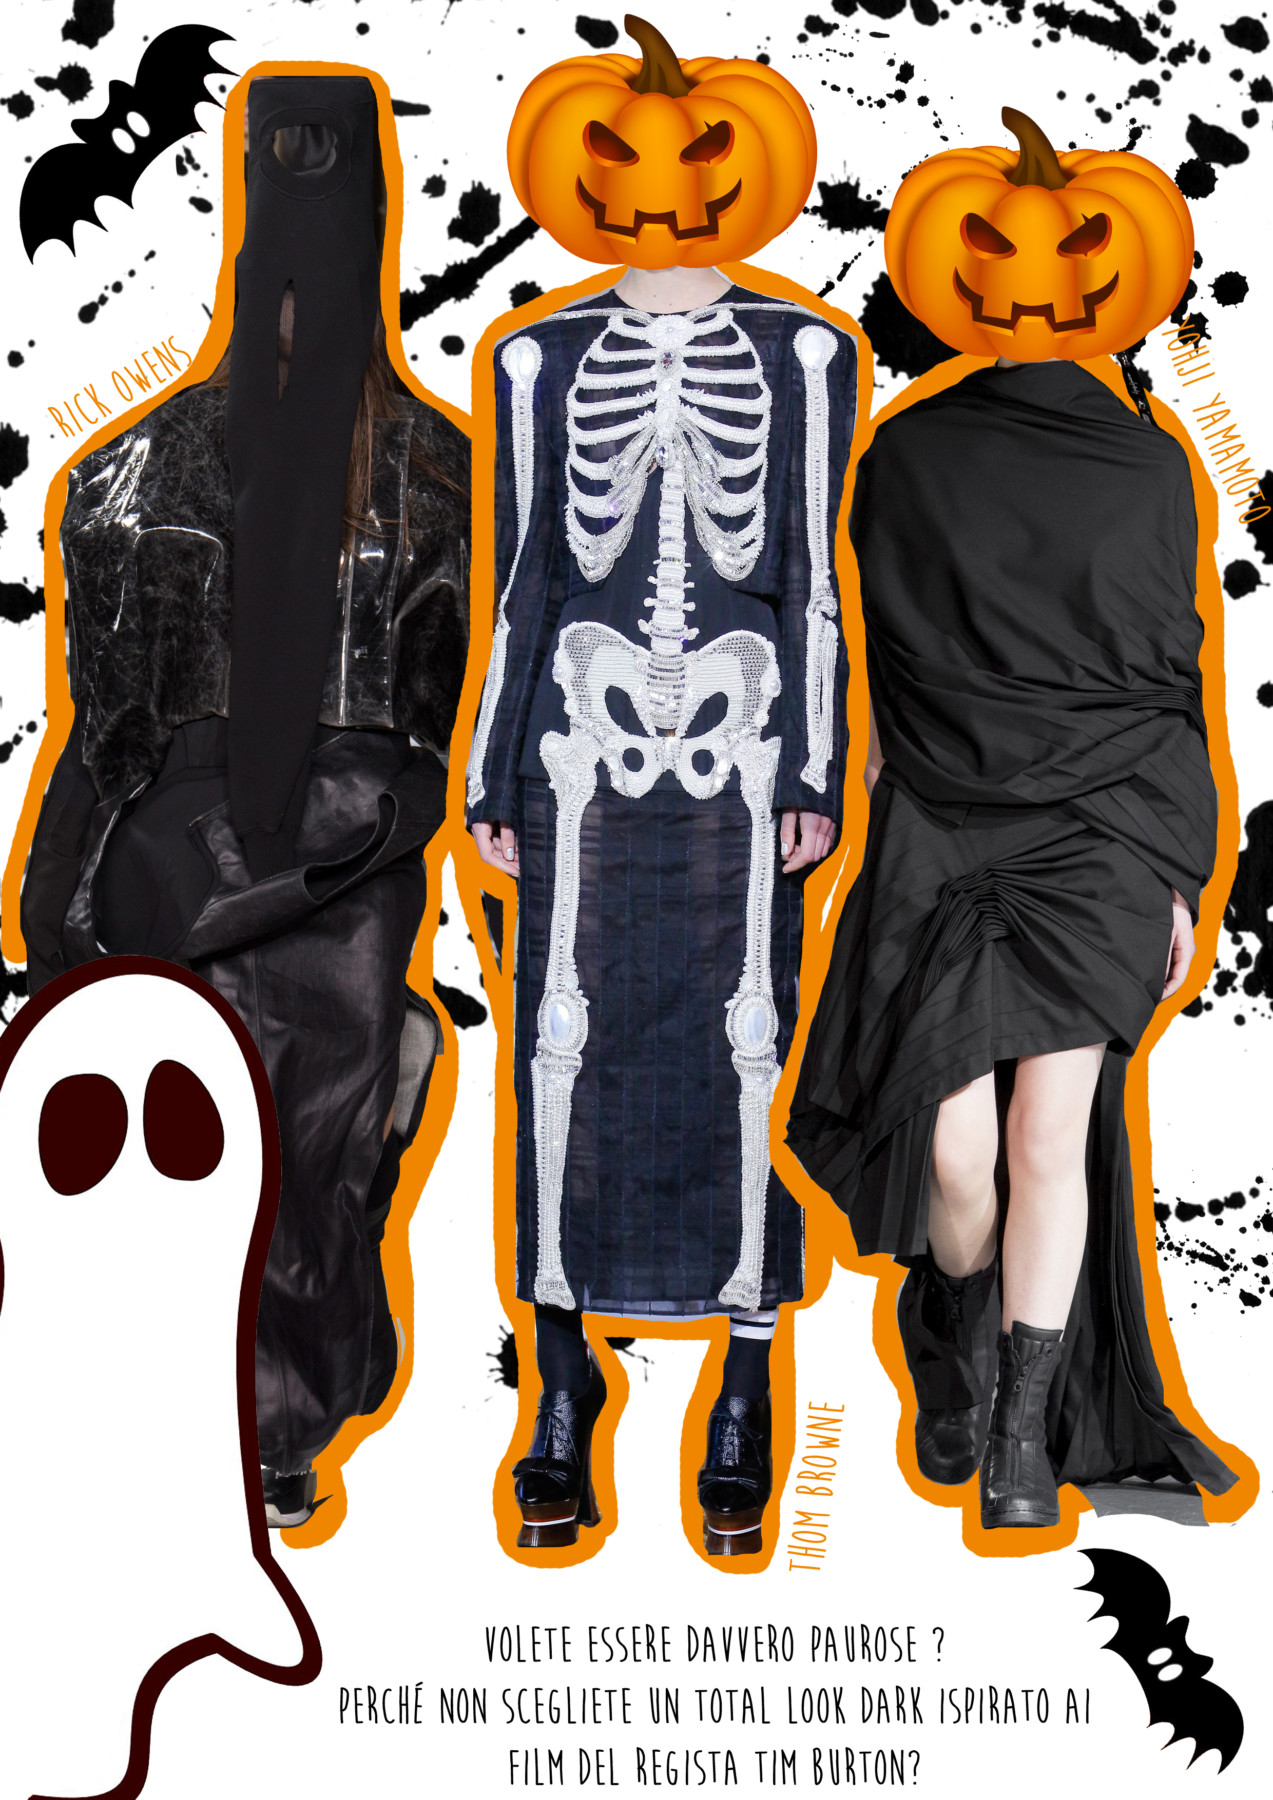 HALLOWEEN COSTUMEs, halloween, domizia vanni, ottobre, fashion, party, dolcetto scherzetto,